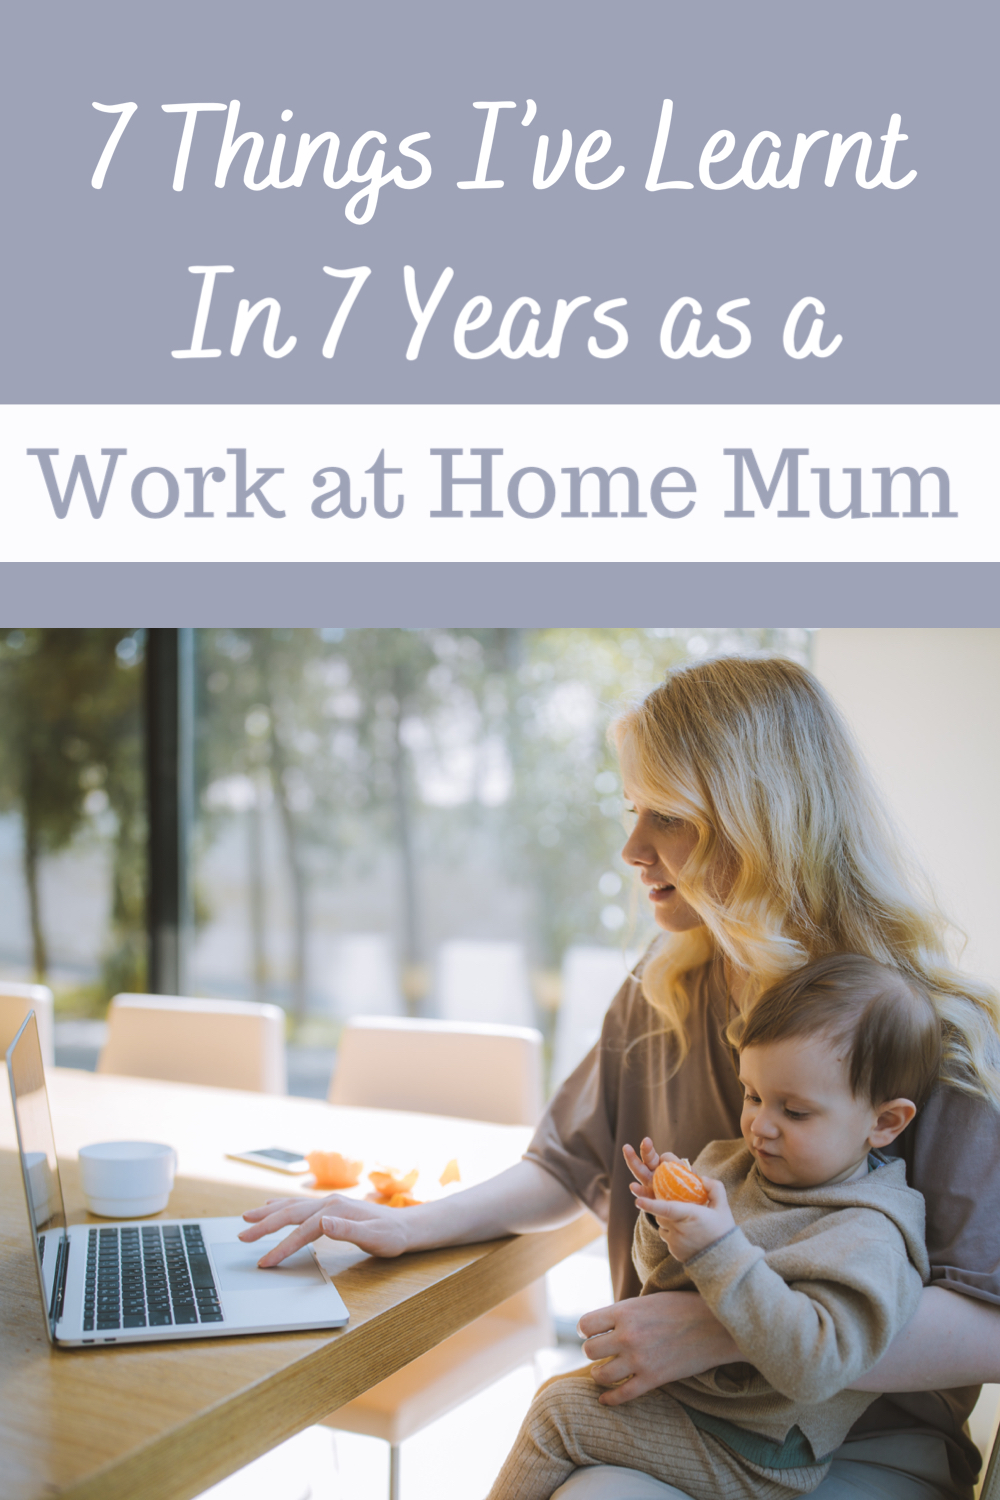 7 things I've learnt in 7 years as a work at home mum